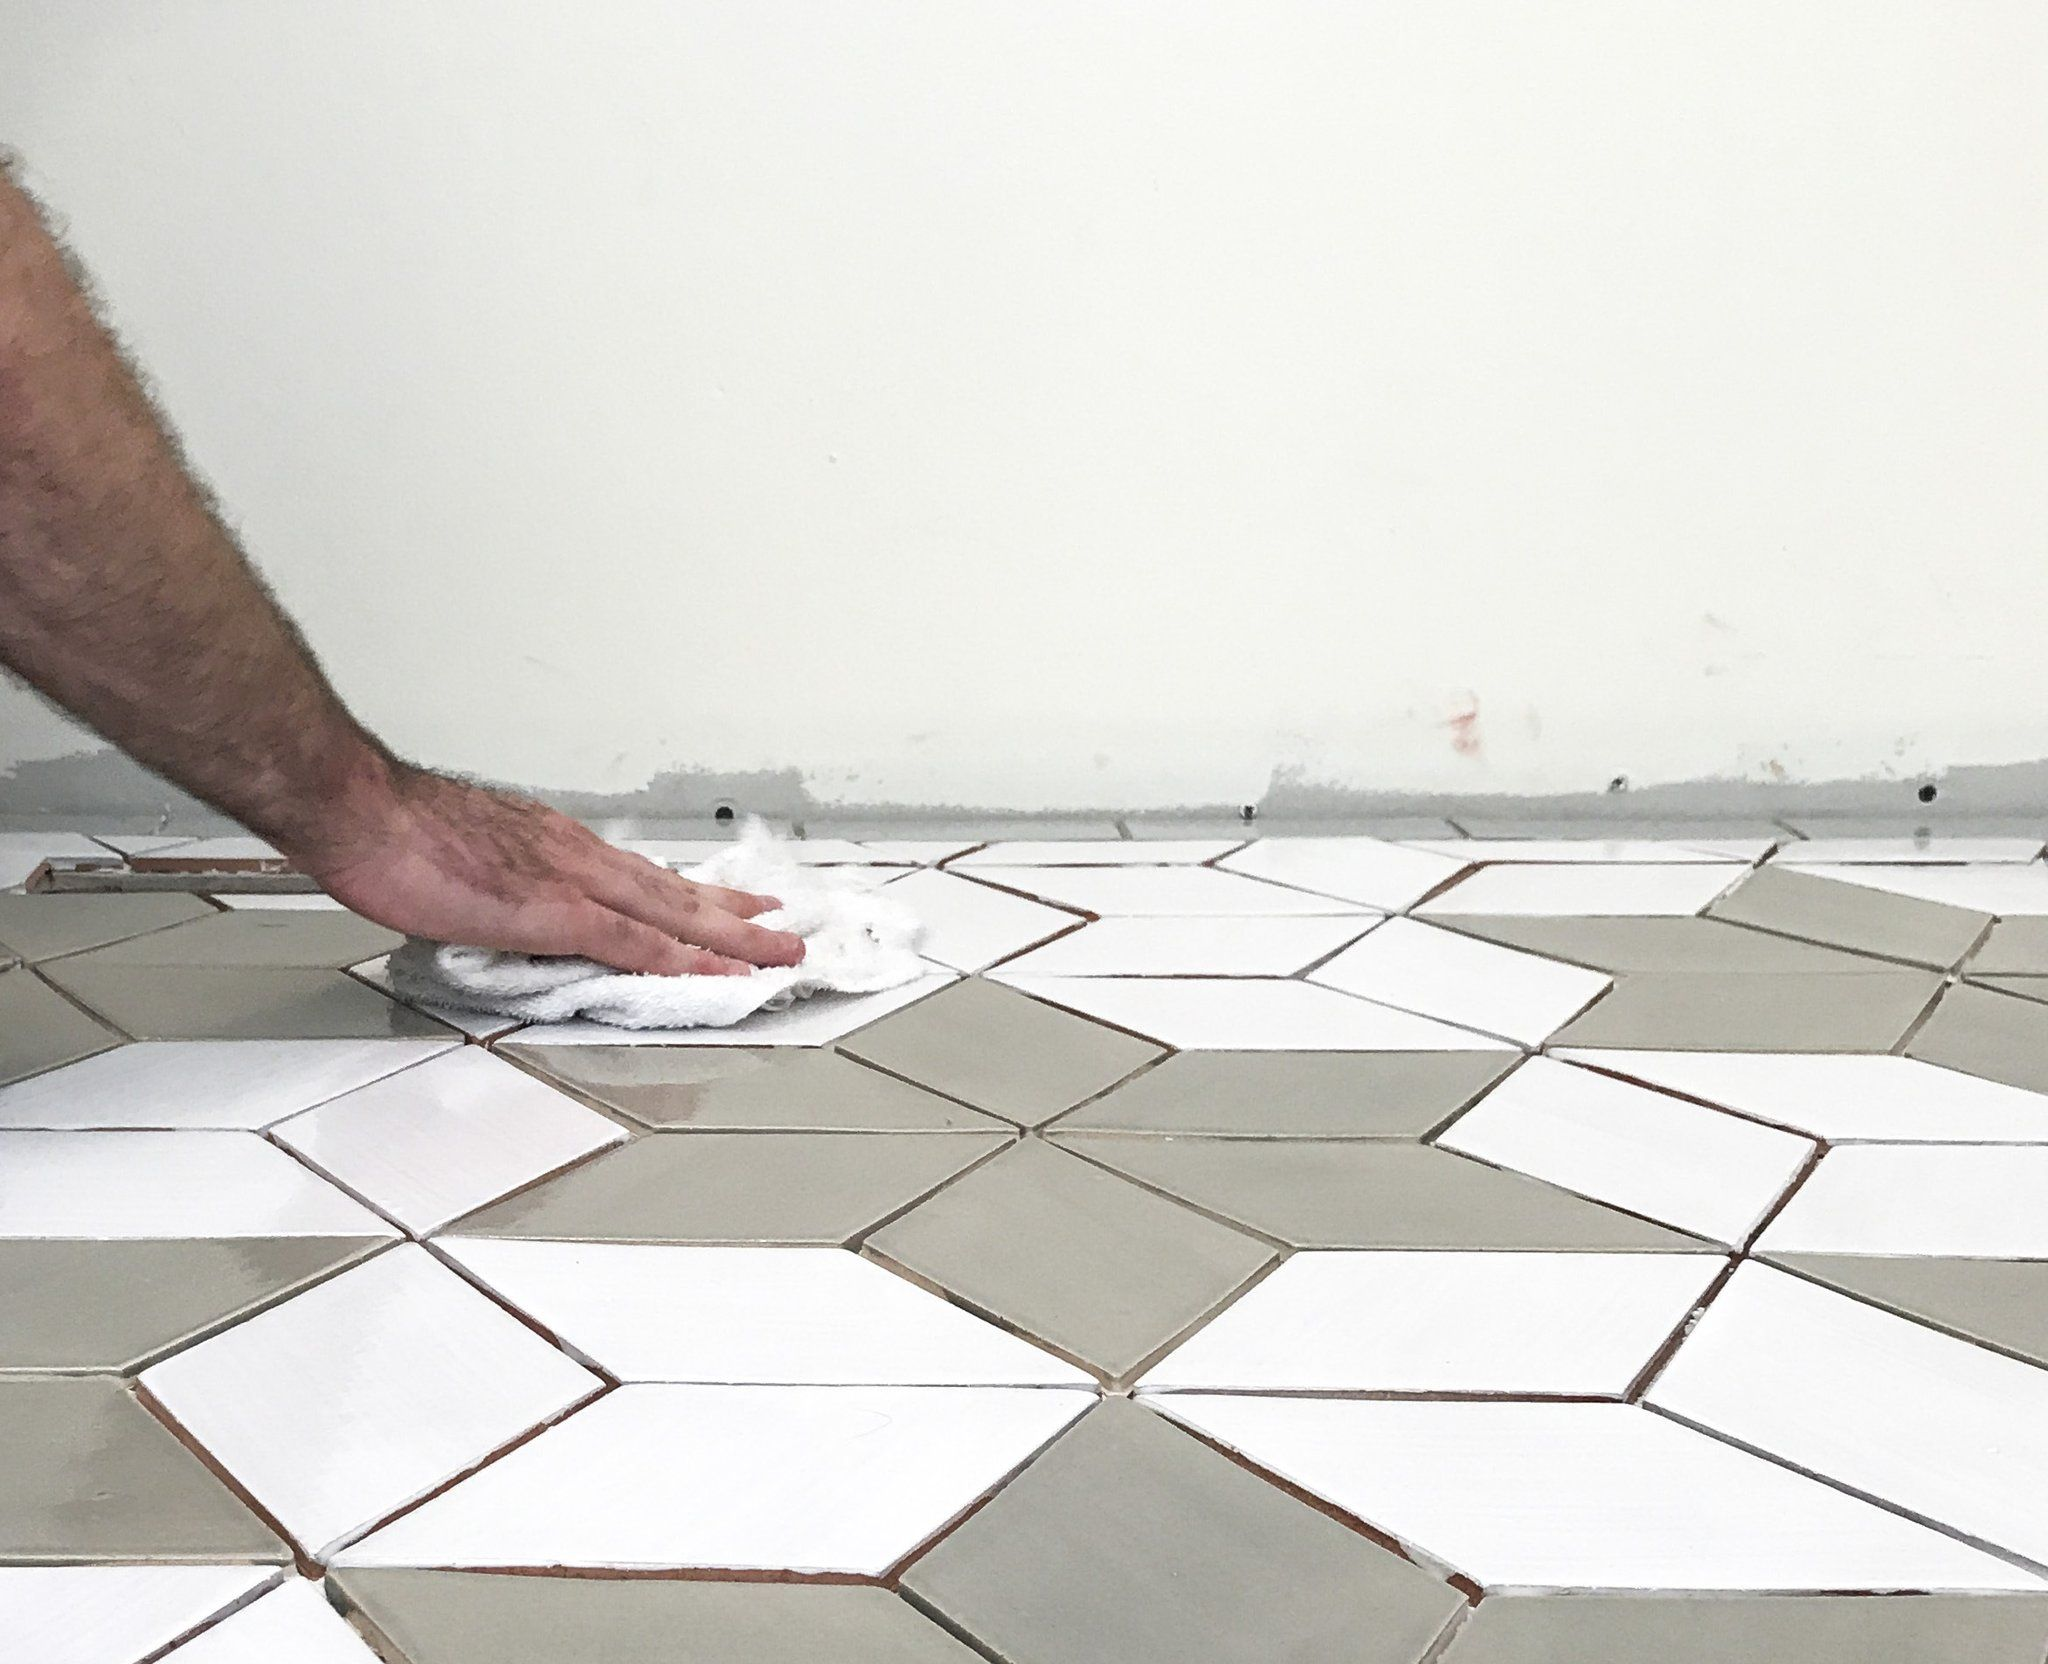 How To Clean Ceramic Tile Cleaning Ceramic Tiles Ceramic Shower Tile Ceramic Tiles